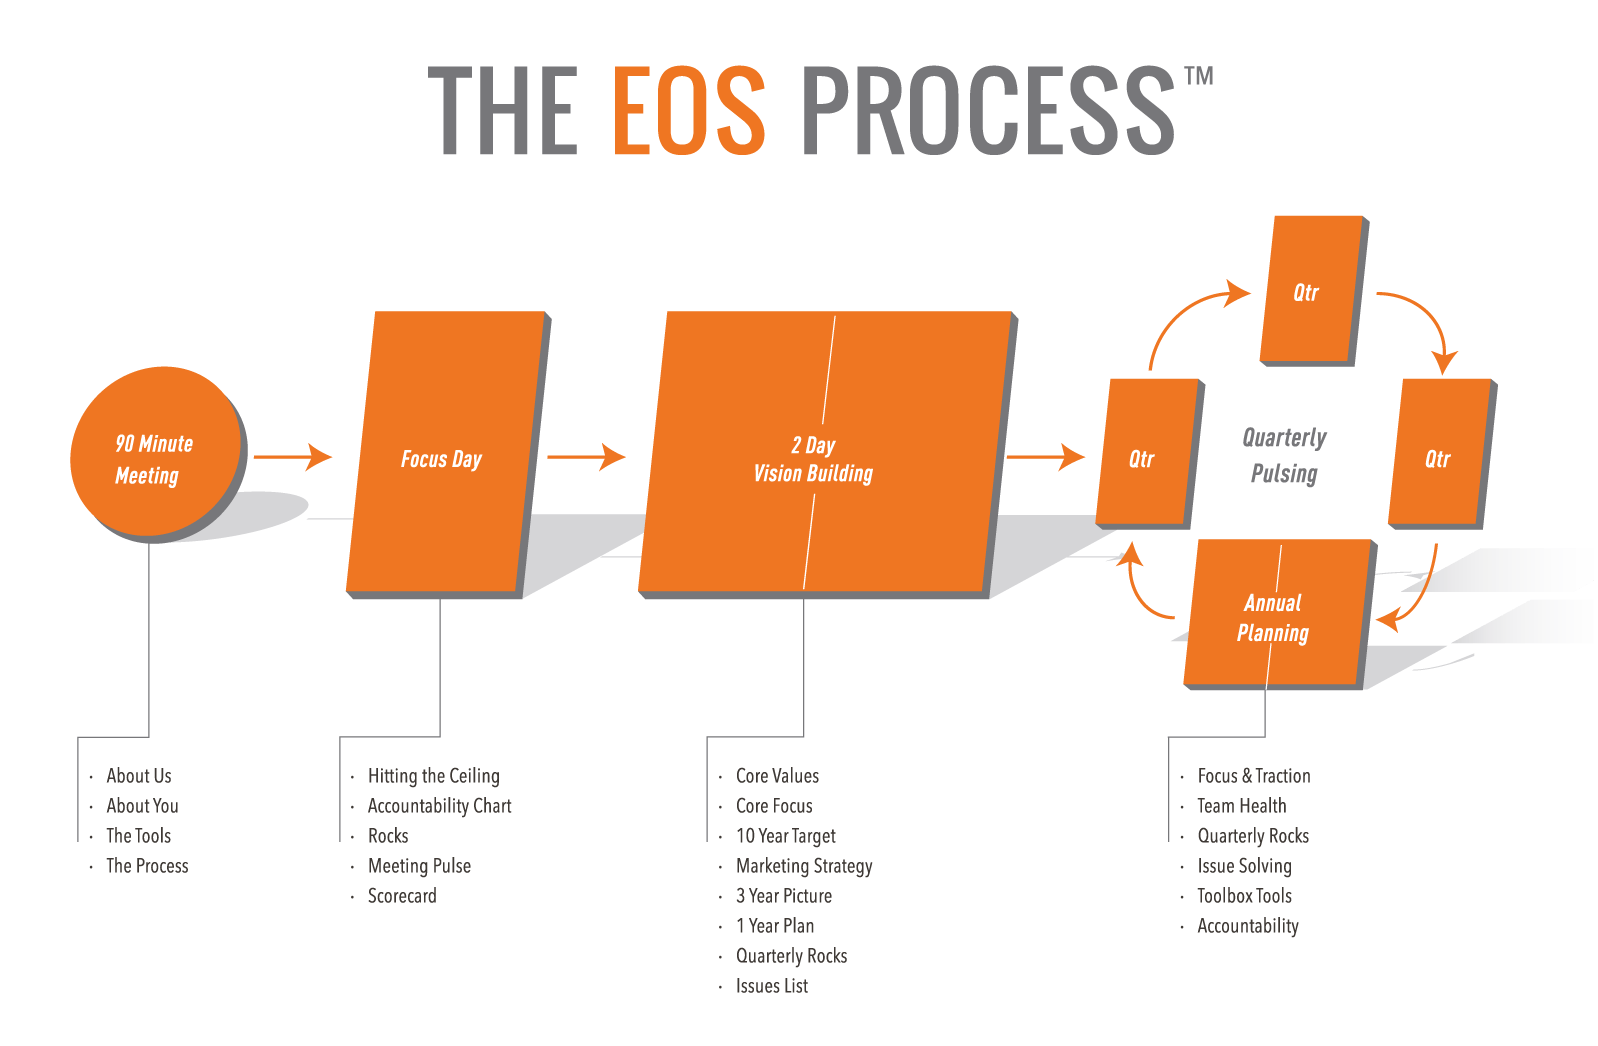 An image showing the EOS Process that 2Elate use